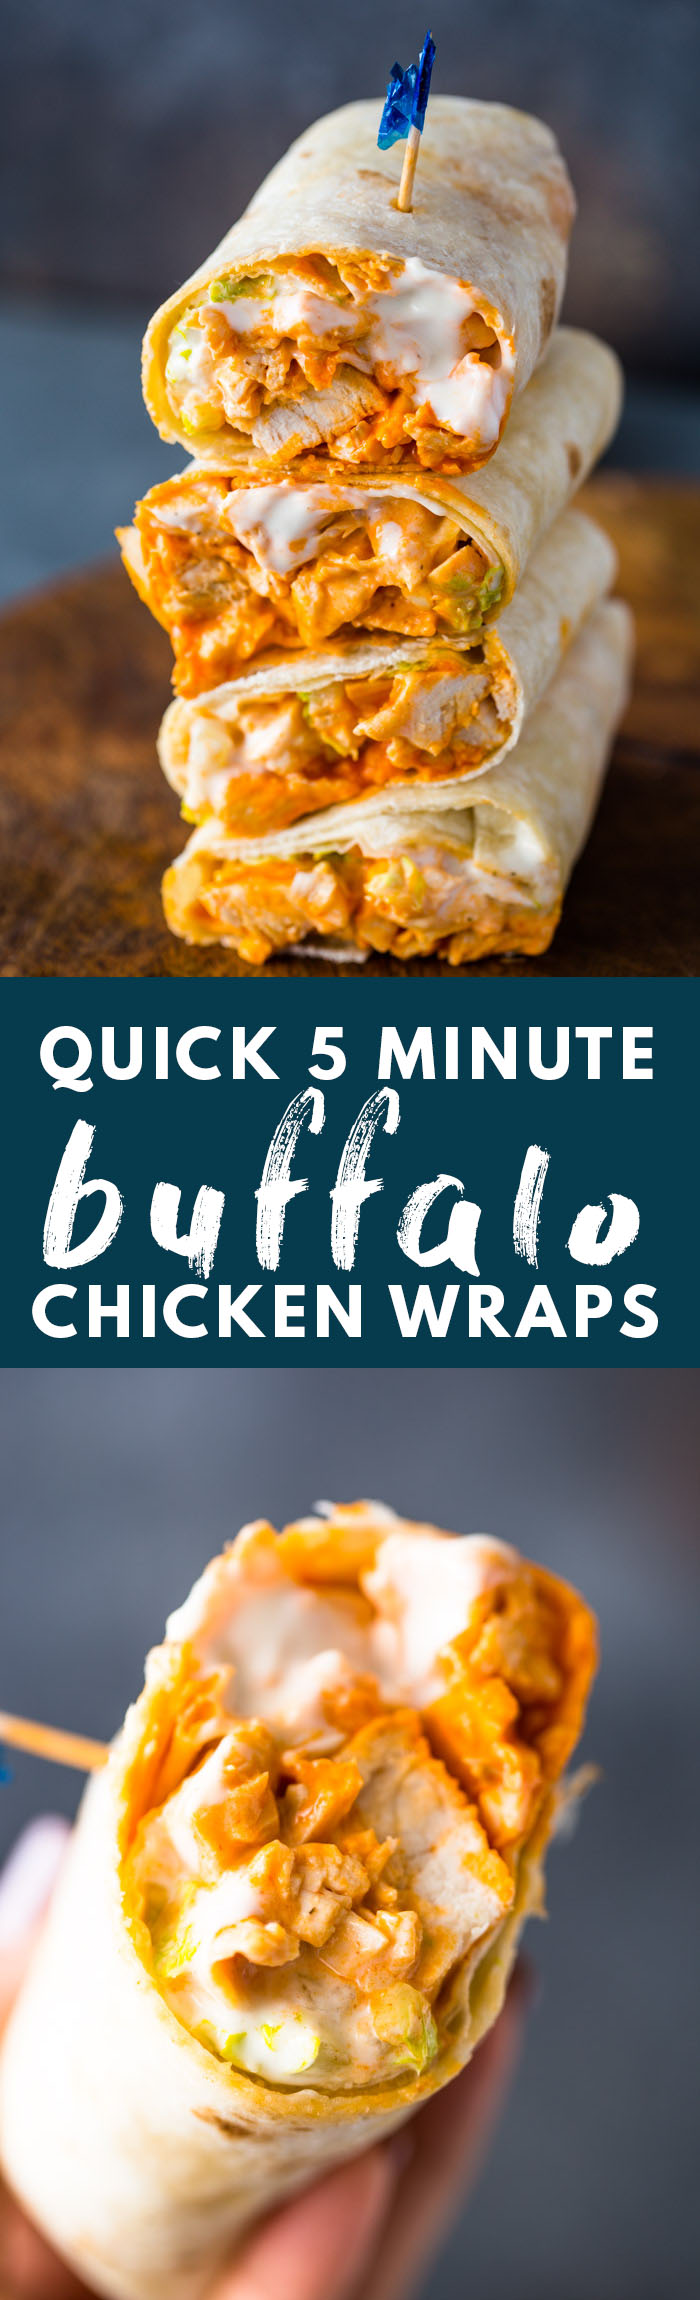 5 Minute Buffalo Chicken Wraps